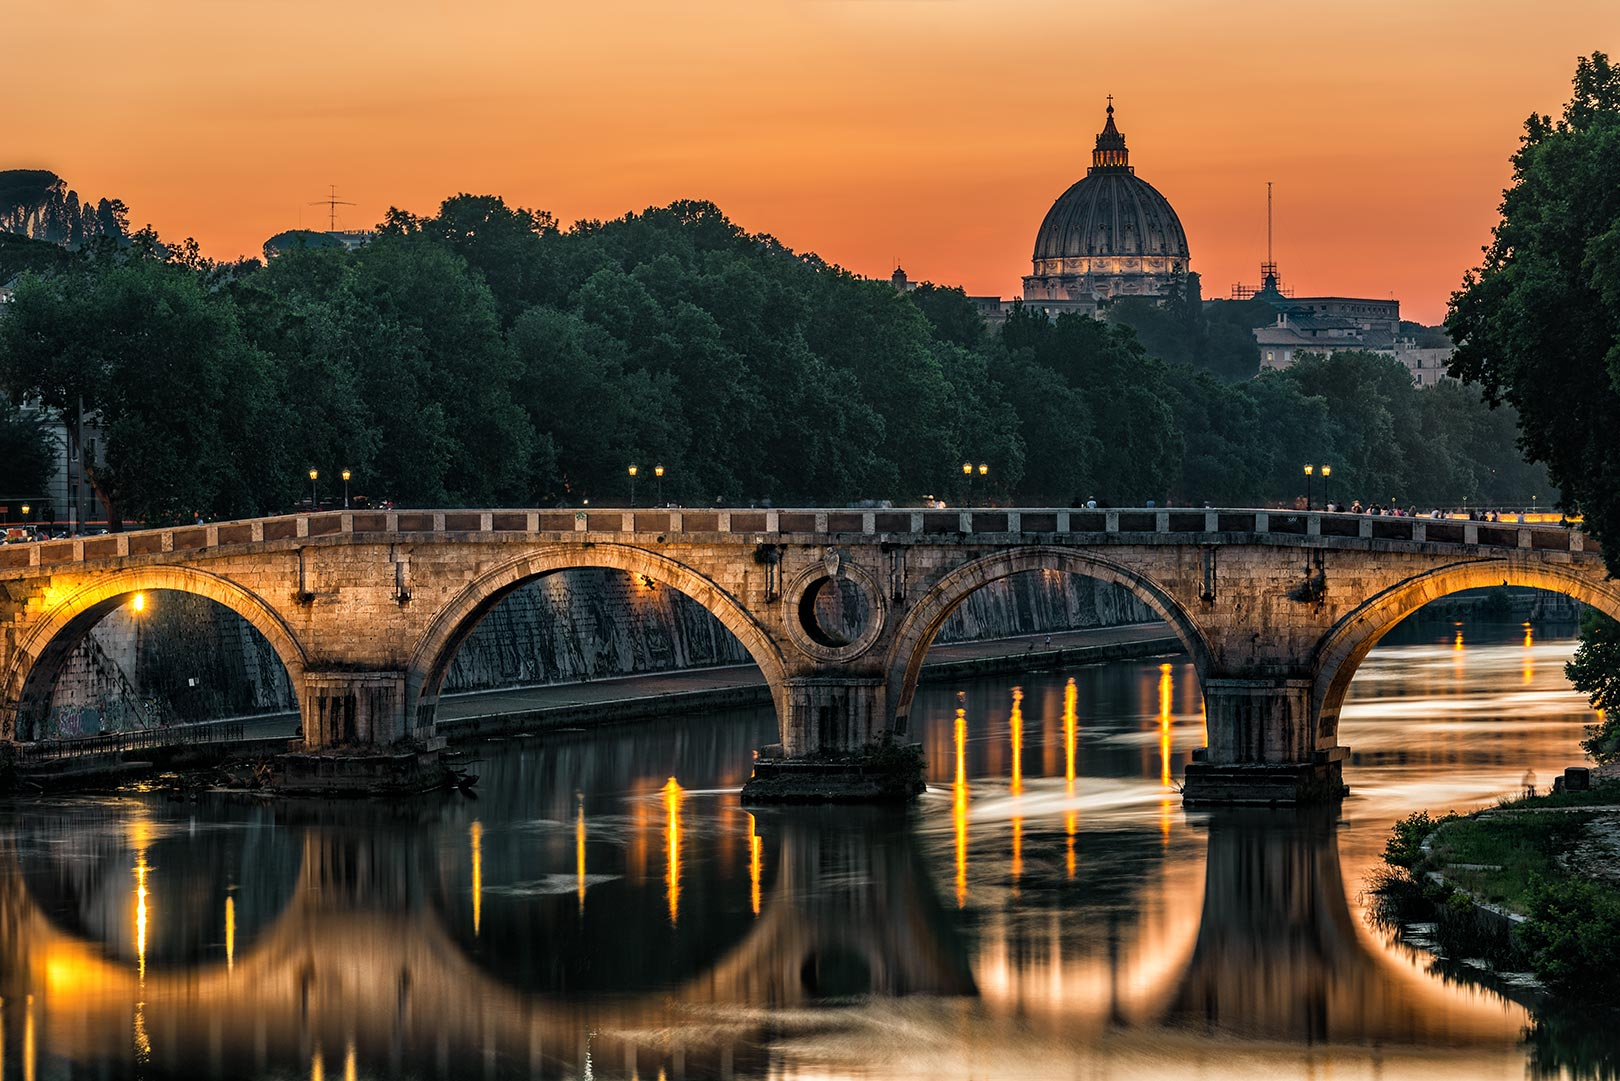 How beautiful are you in Rome tonight ......